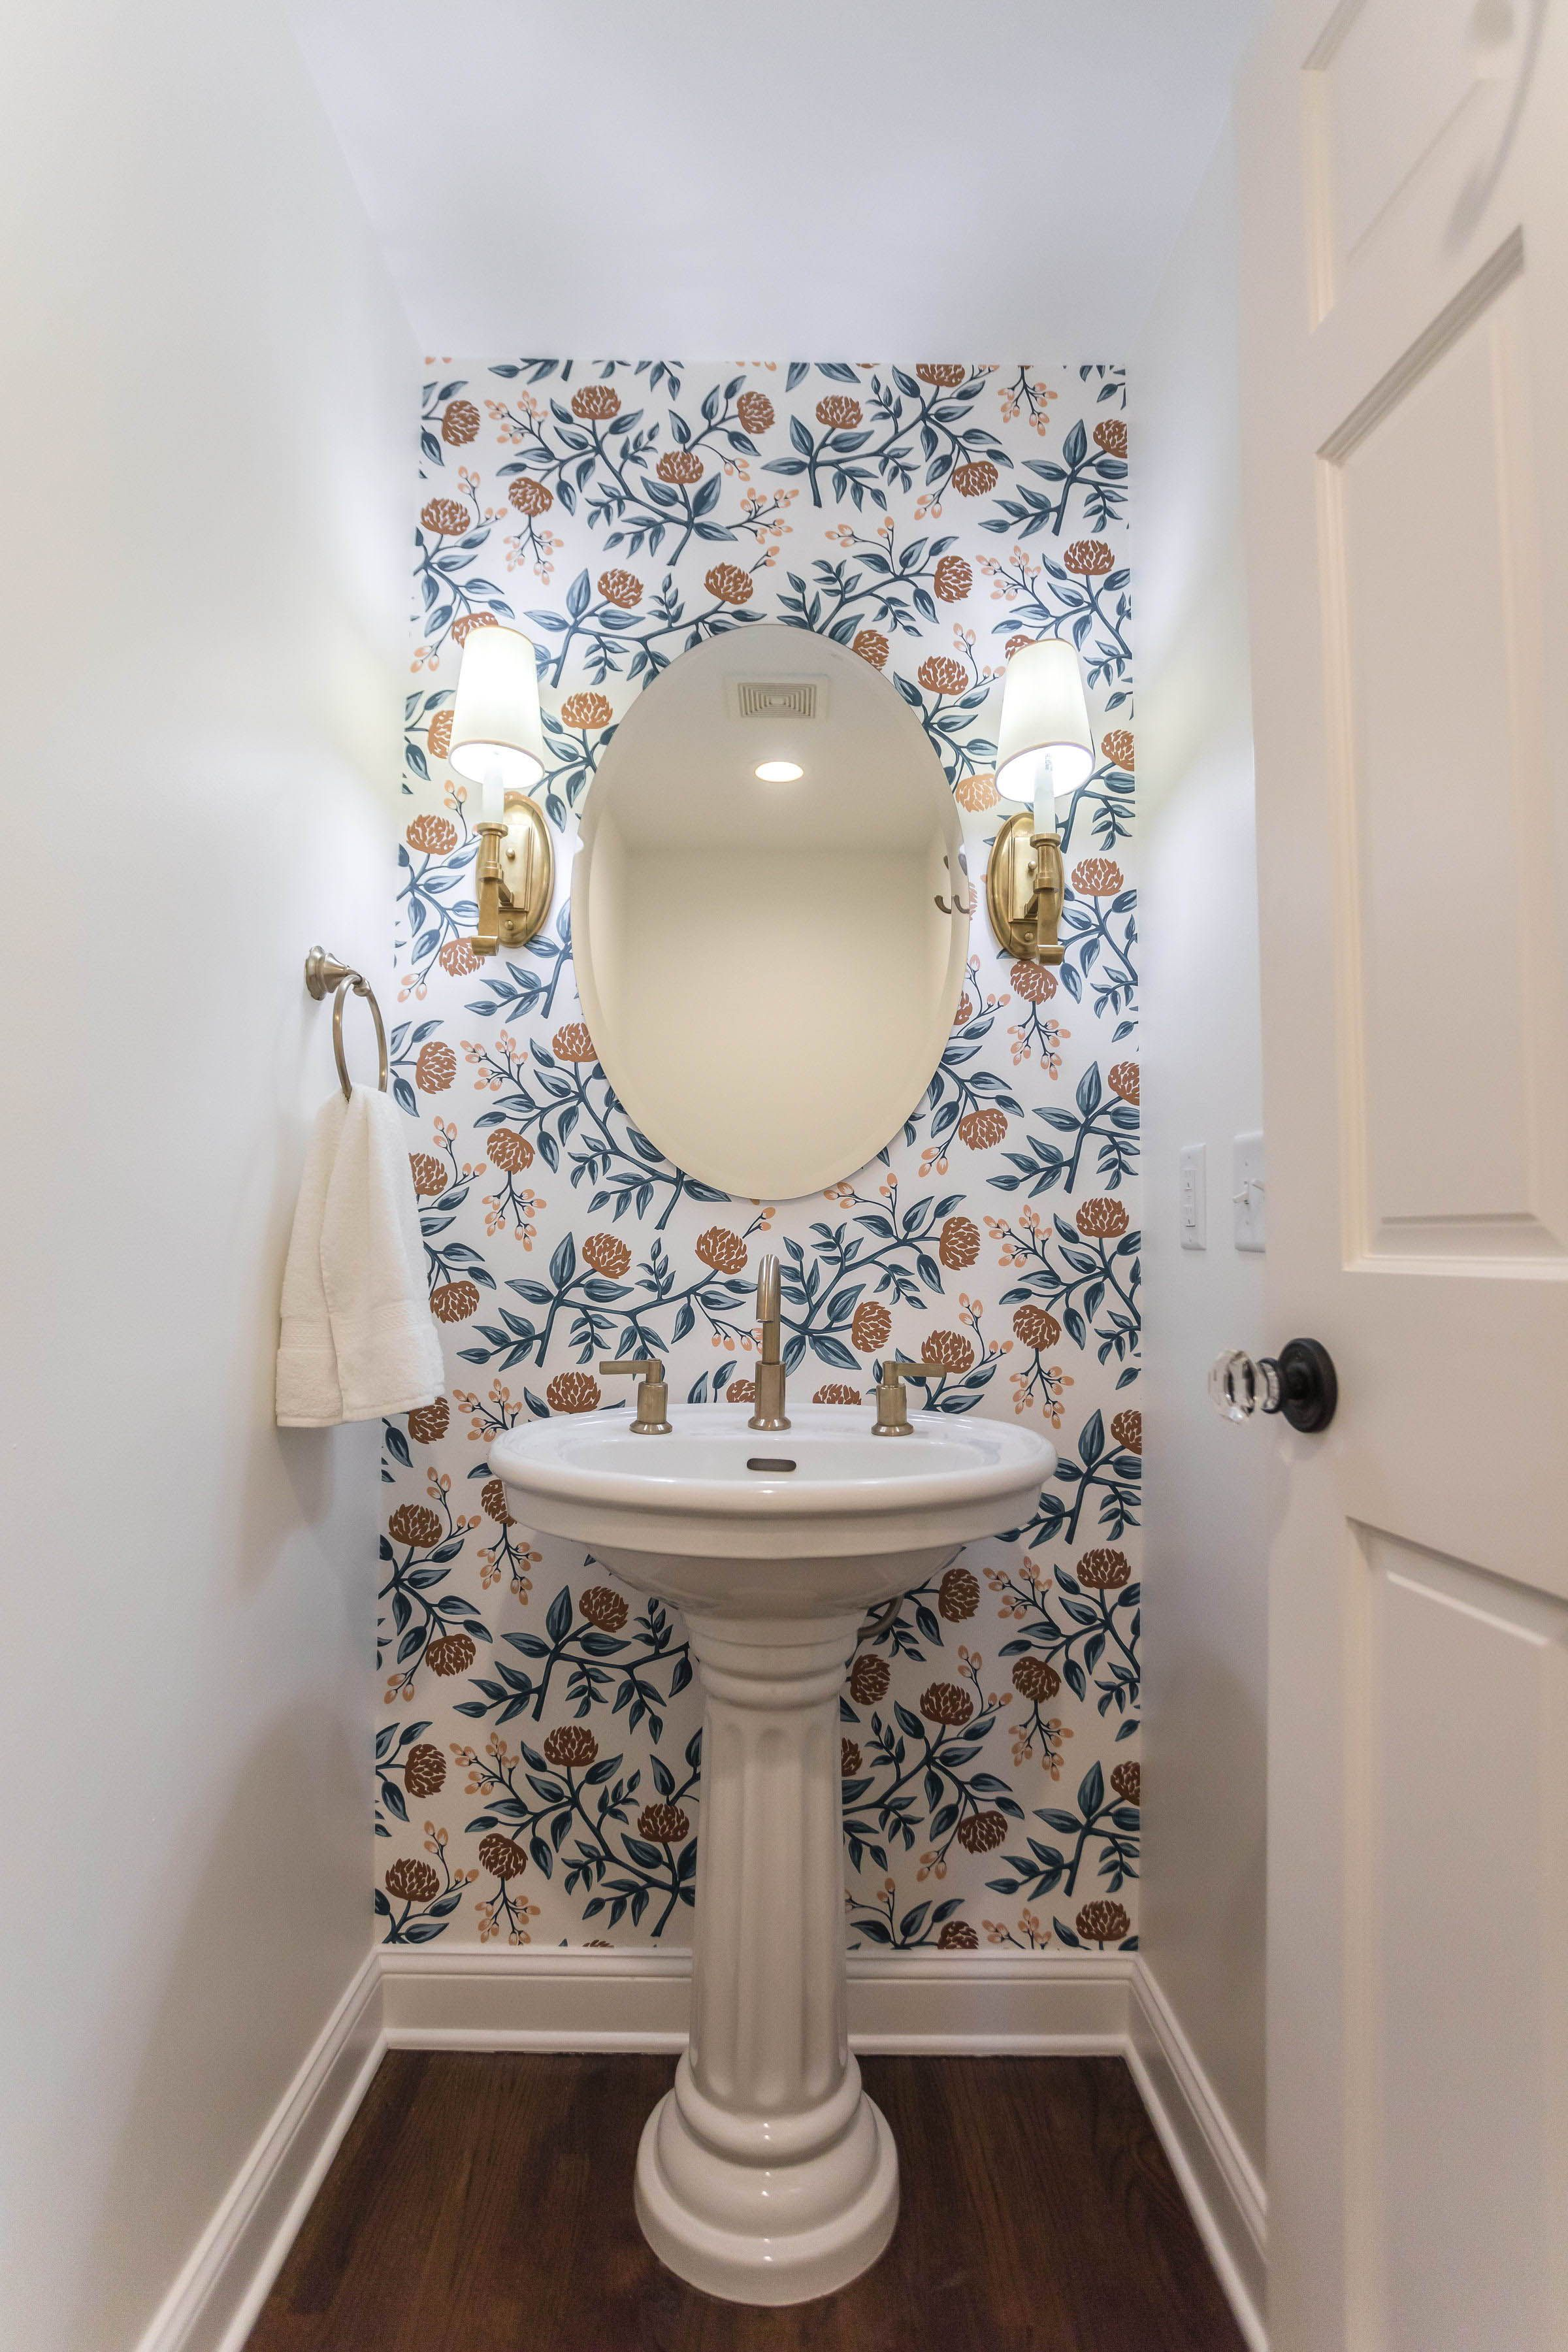 Powder Bathroom With Floral Wallpaper And Gold Faucet Jkath